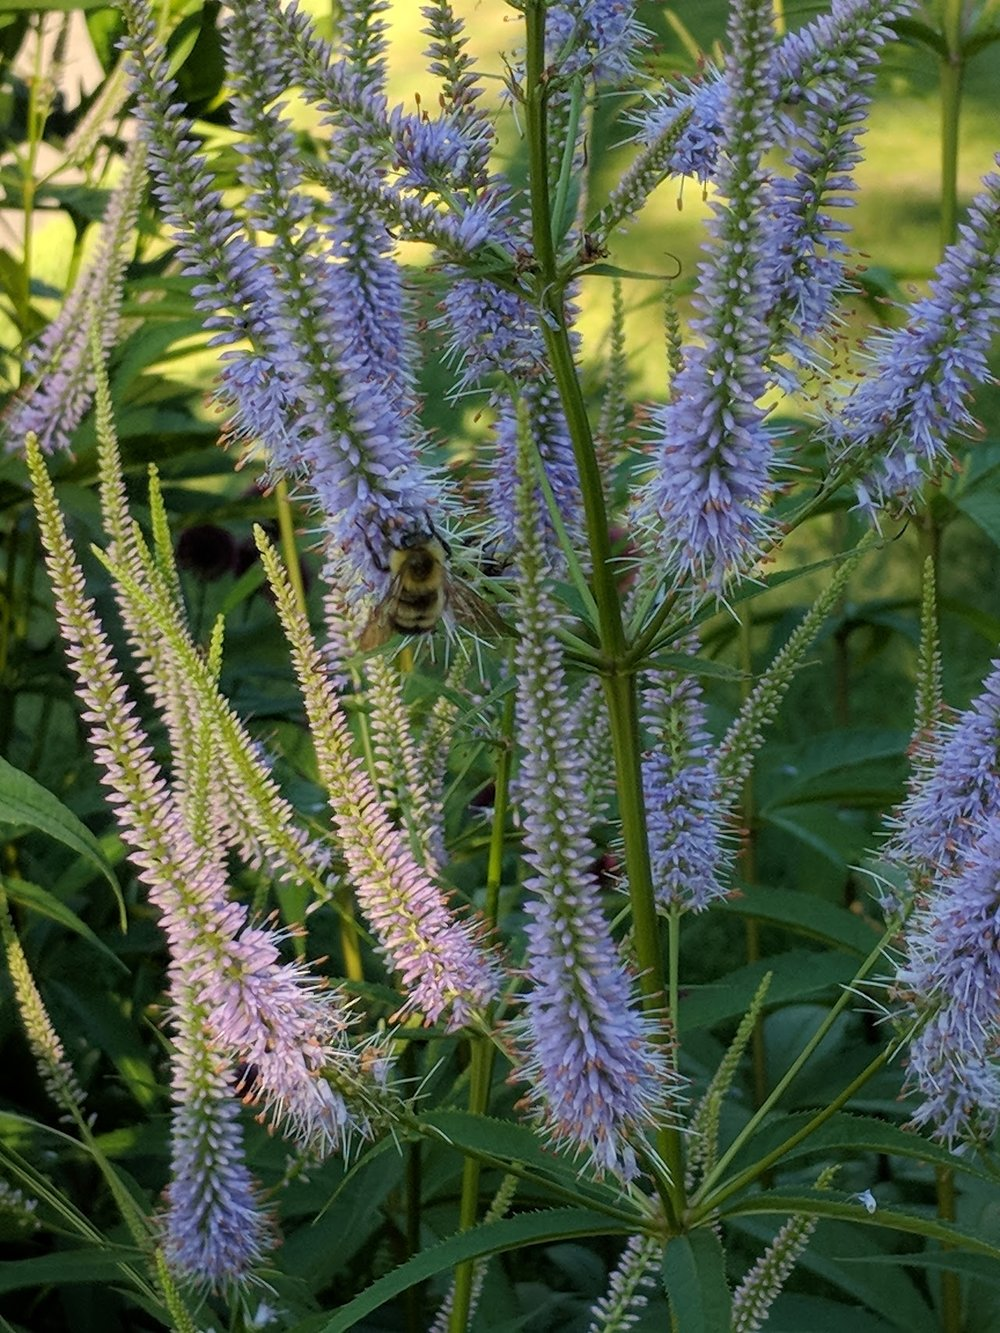 Bumblebee enjoys fresh Veronicastrum 'Fascination' blossoms